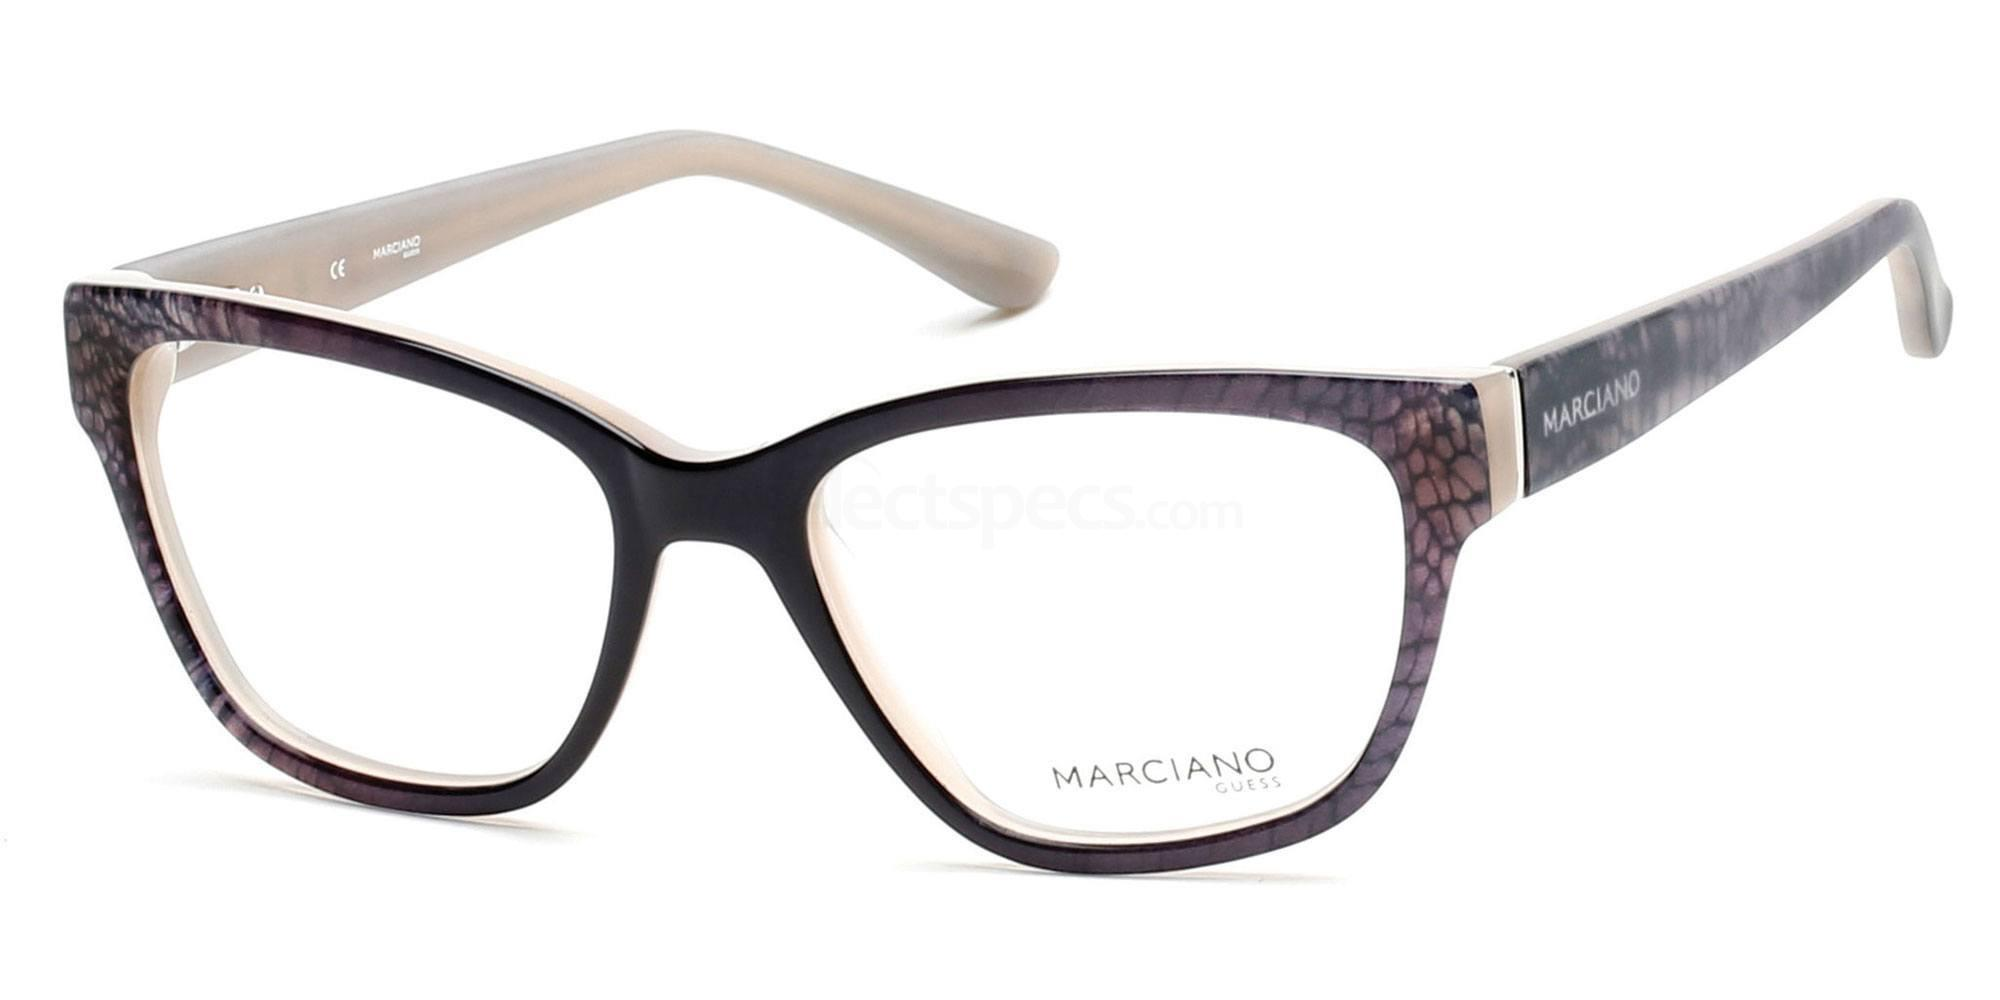 005 GM 260 Glasses, Guess by Marciano